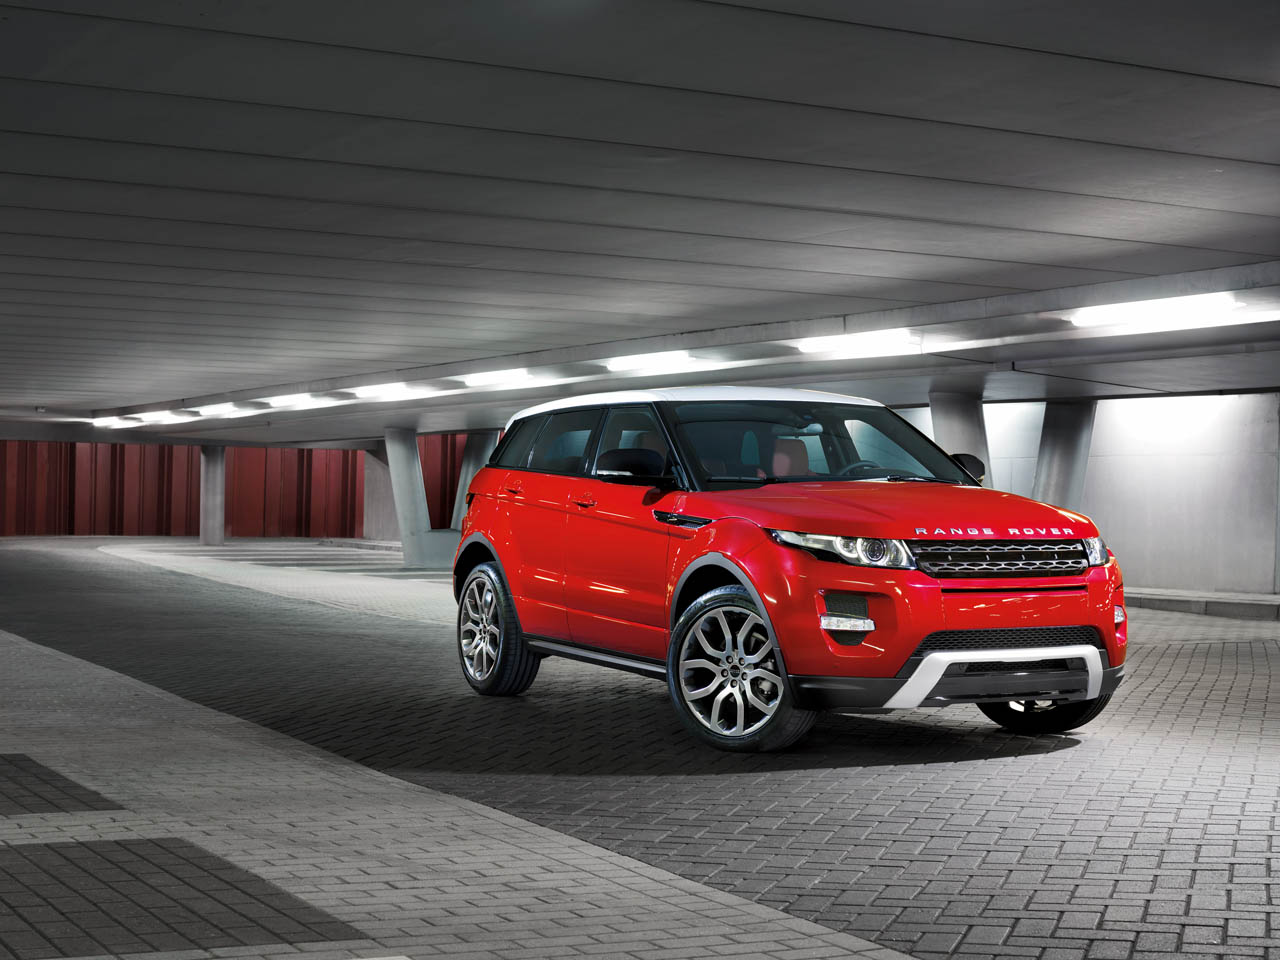 2012 Land Rover Range Rover Evoque Takes Home North American Truck of the Year Award